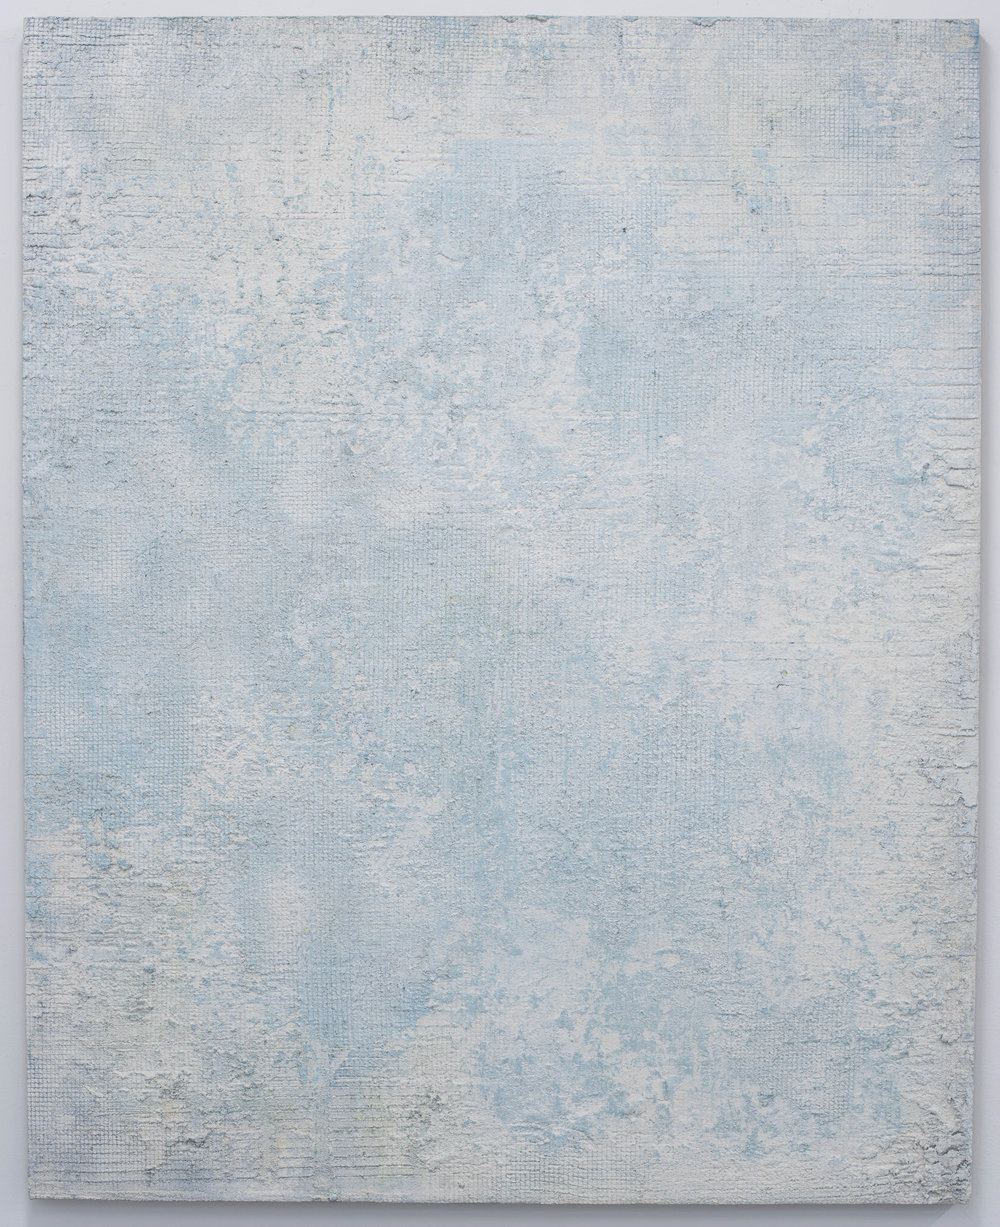 Untitled ,2018  Mixed media on linen  150 × 120 cm